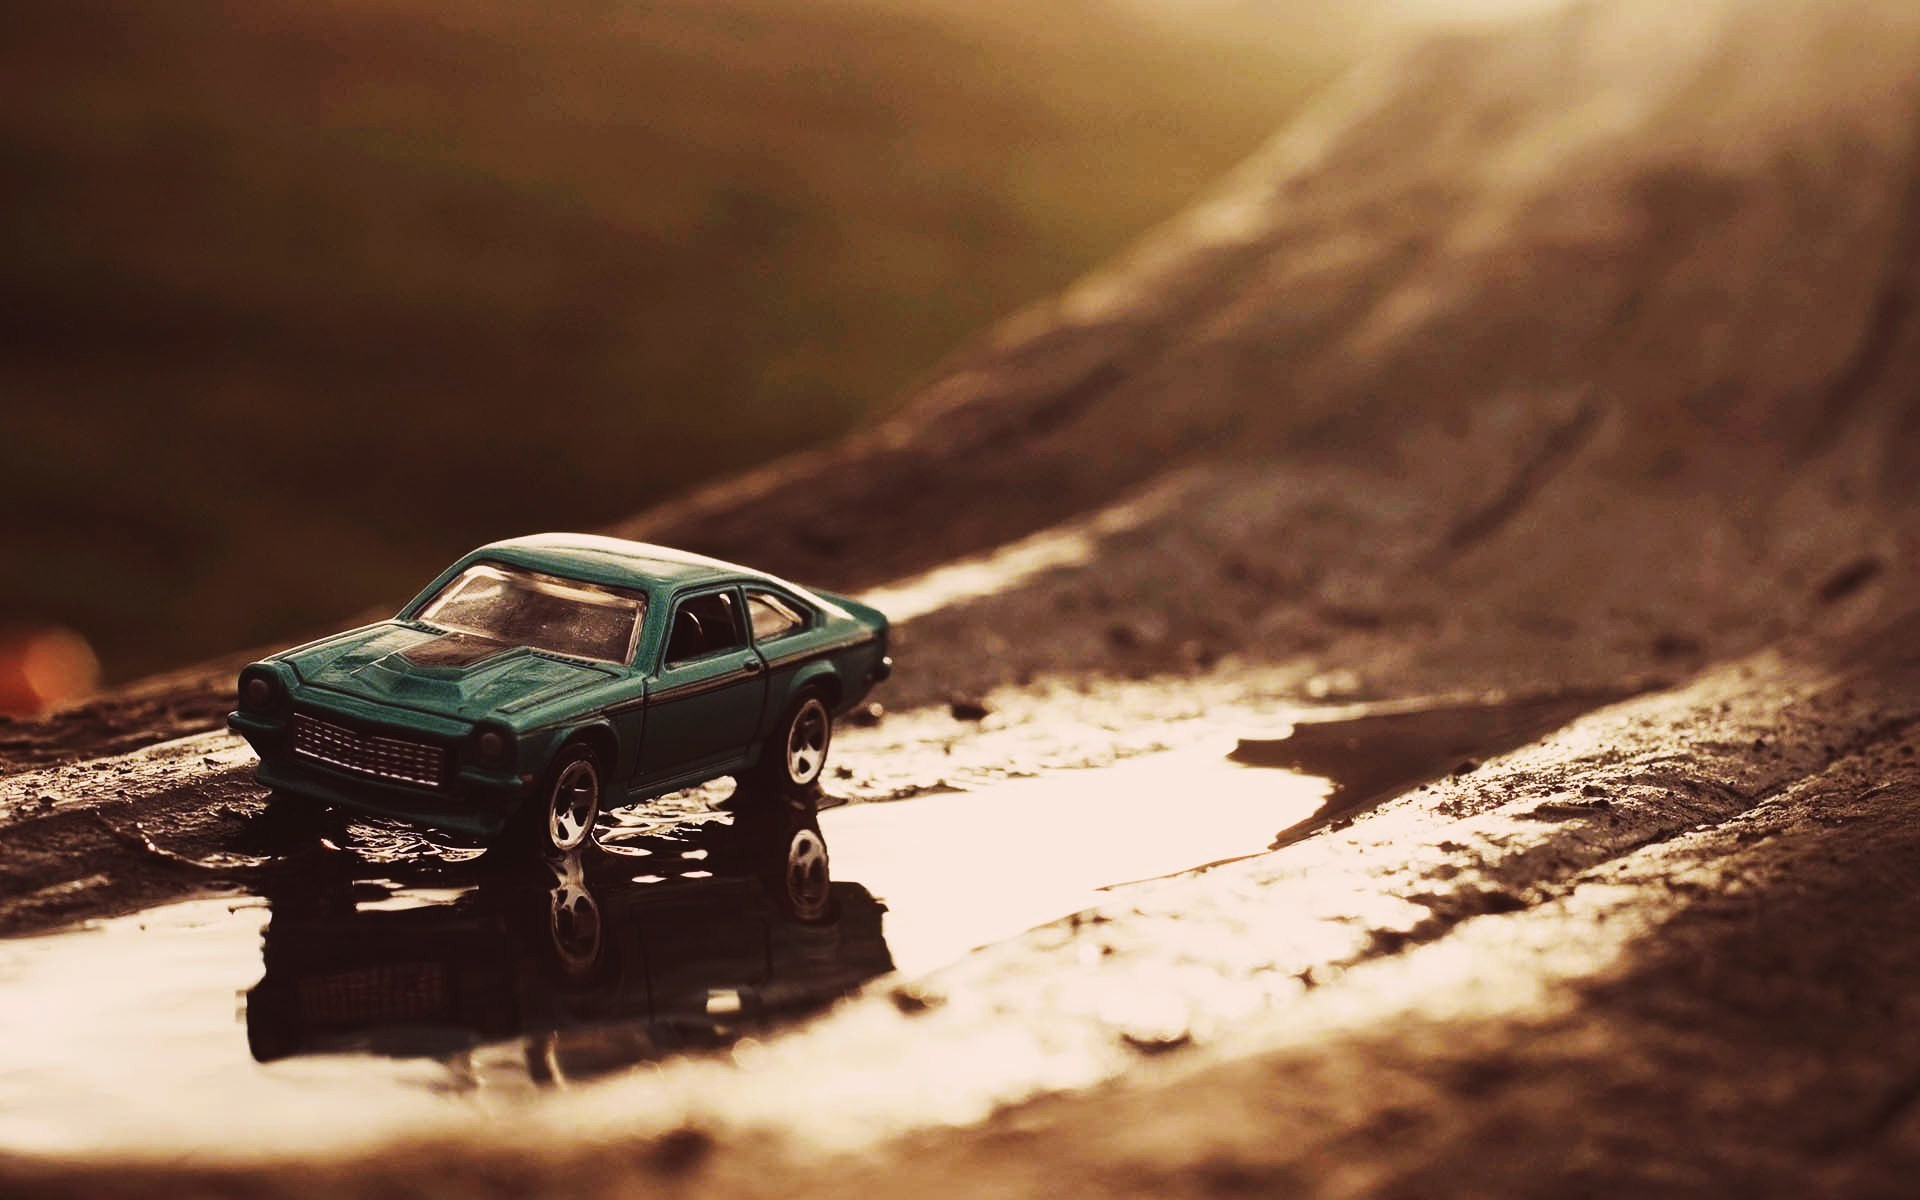 Ford Mustang Toy Macro